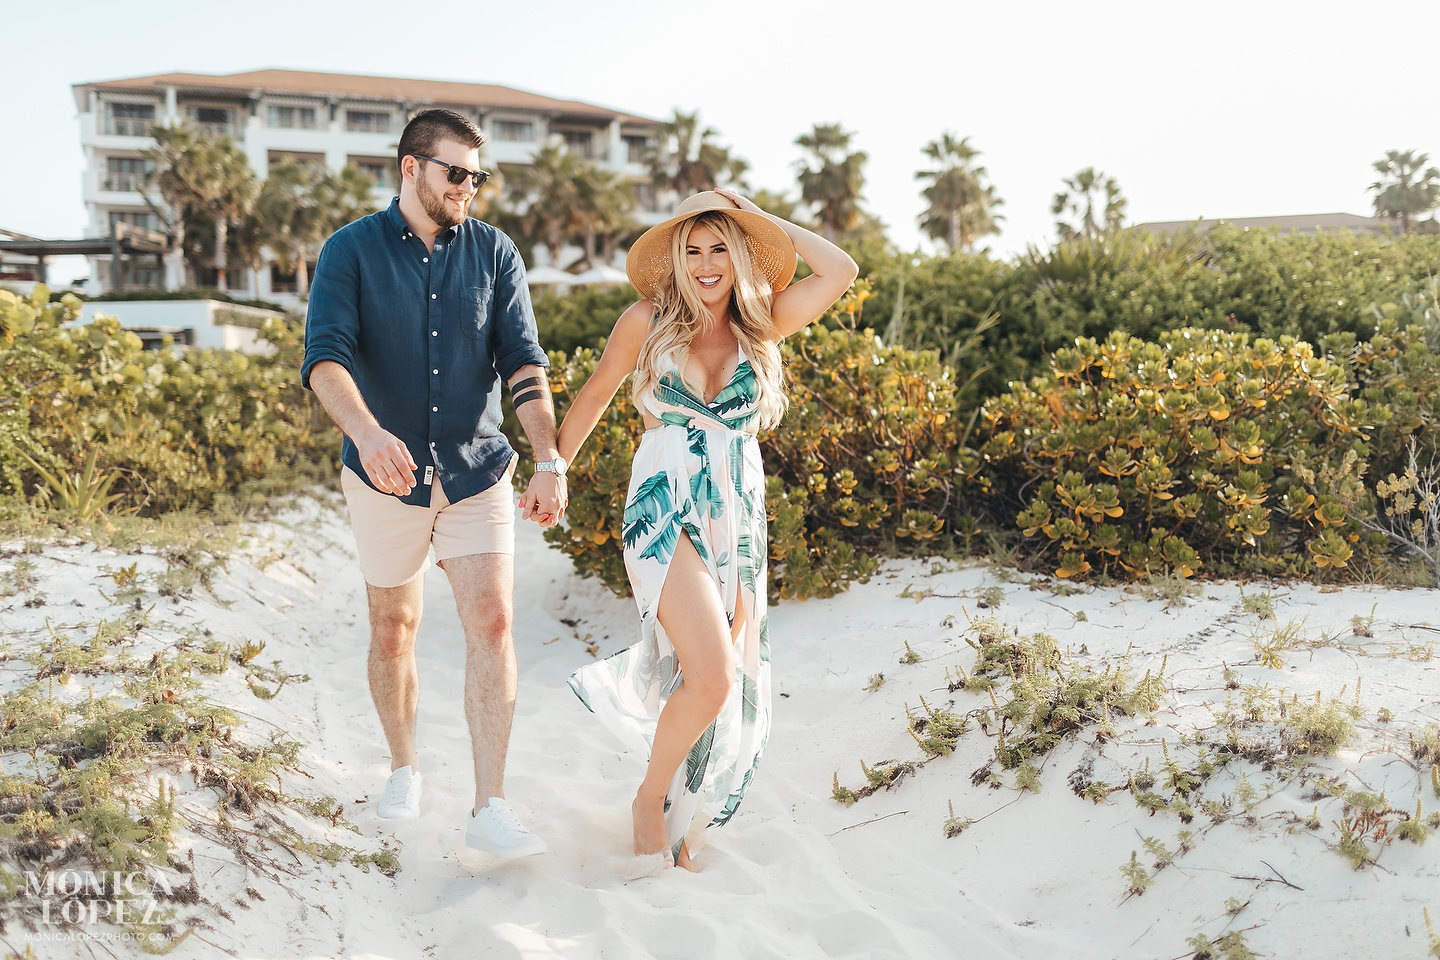 The Bachelor's Juelia Kinney Engagement Photos by Monica Lopez Photography